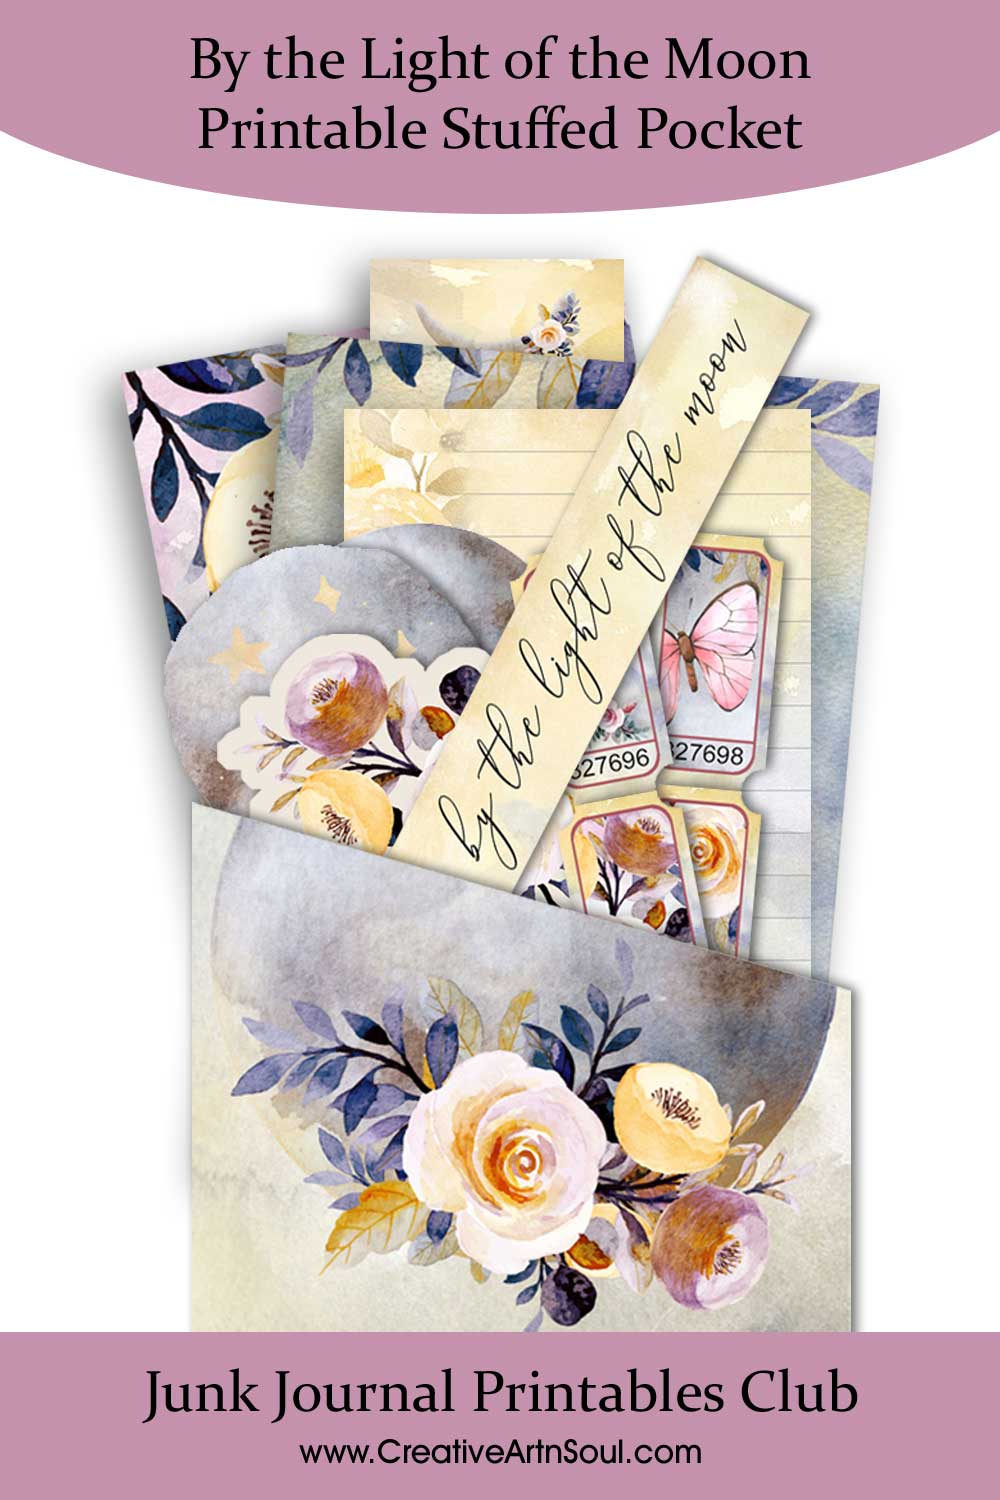 Printable Stuffed Pockets for Your Junk Journals